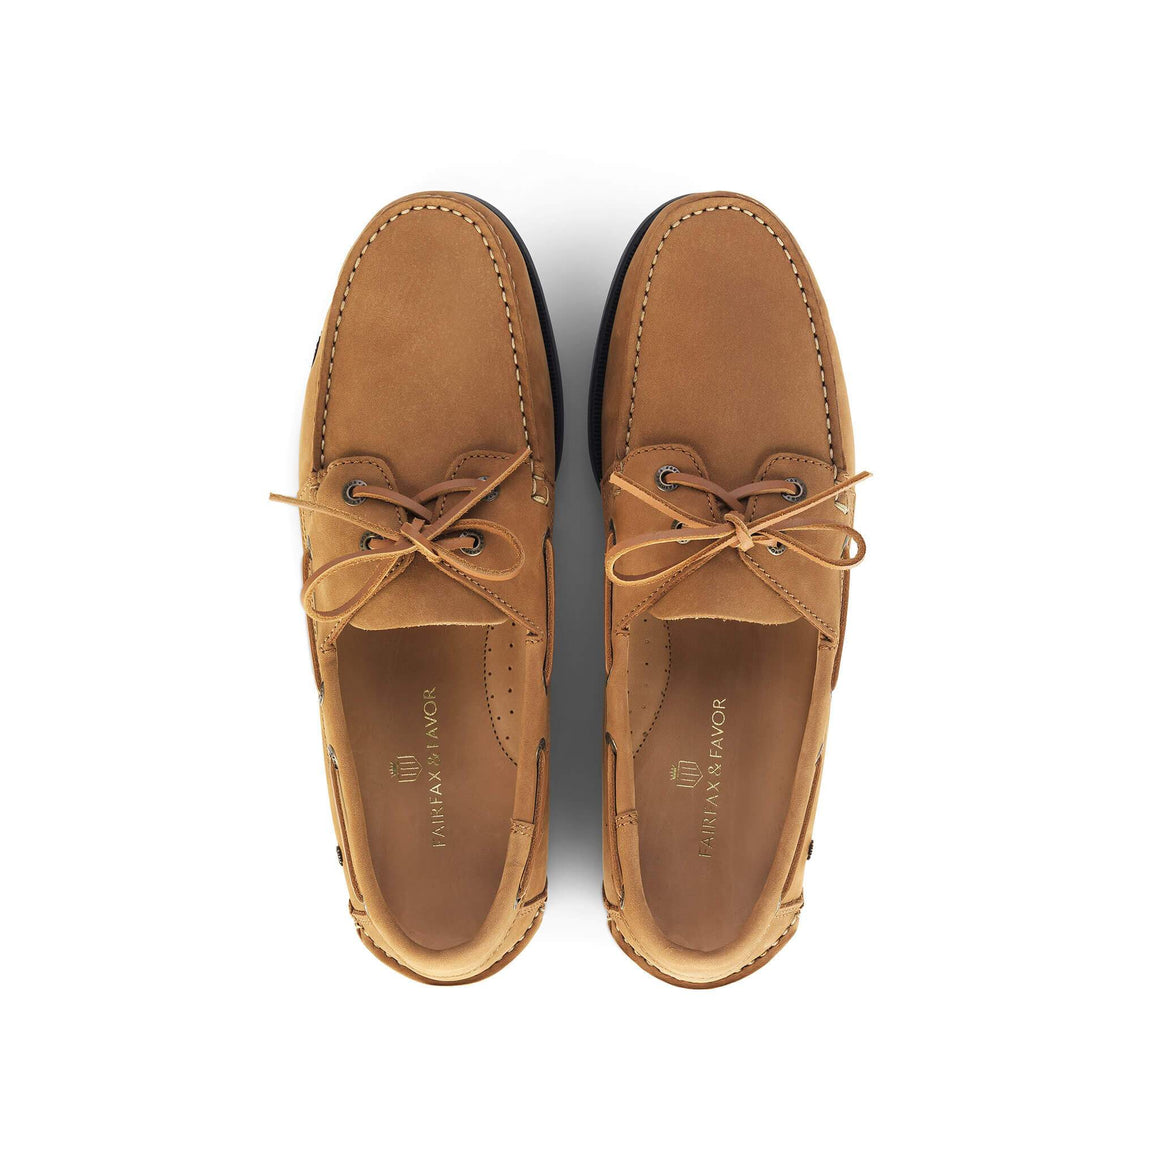 Fairfax & Favor Padstow mens deck shoe in tan